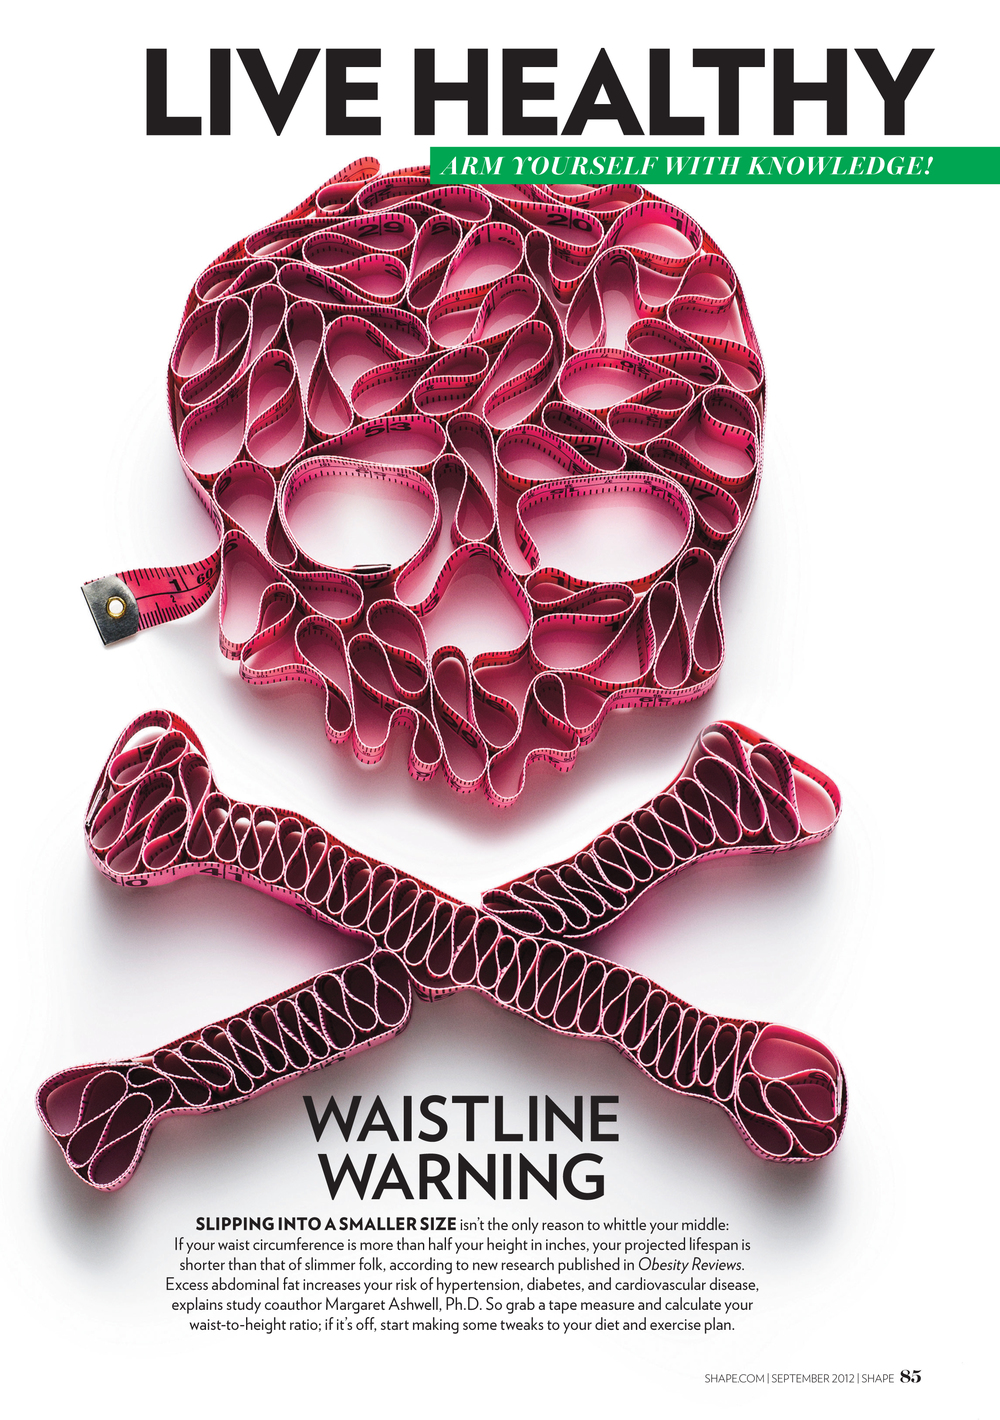 Waistline Warning, September 2012